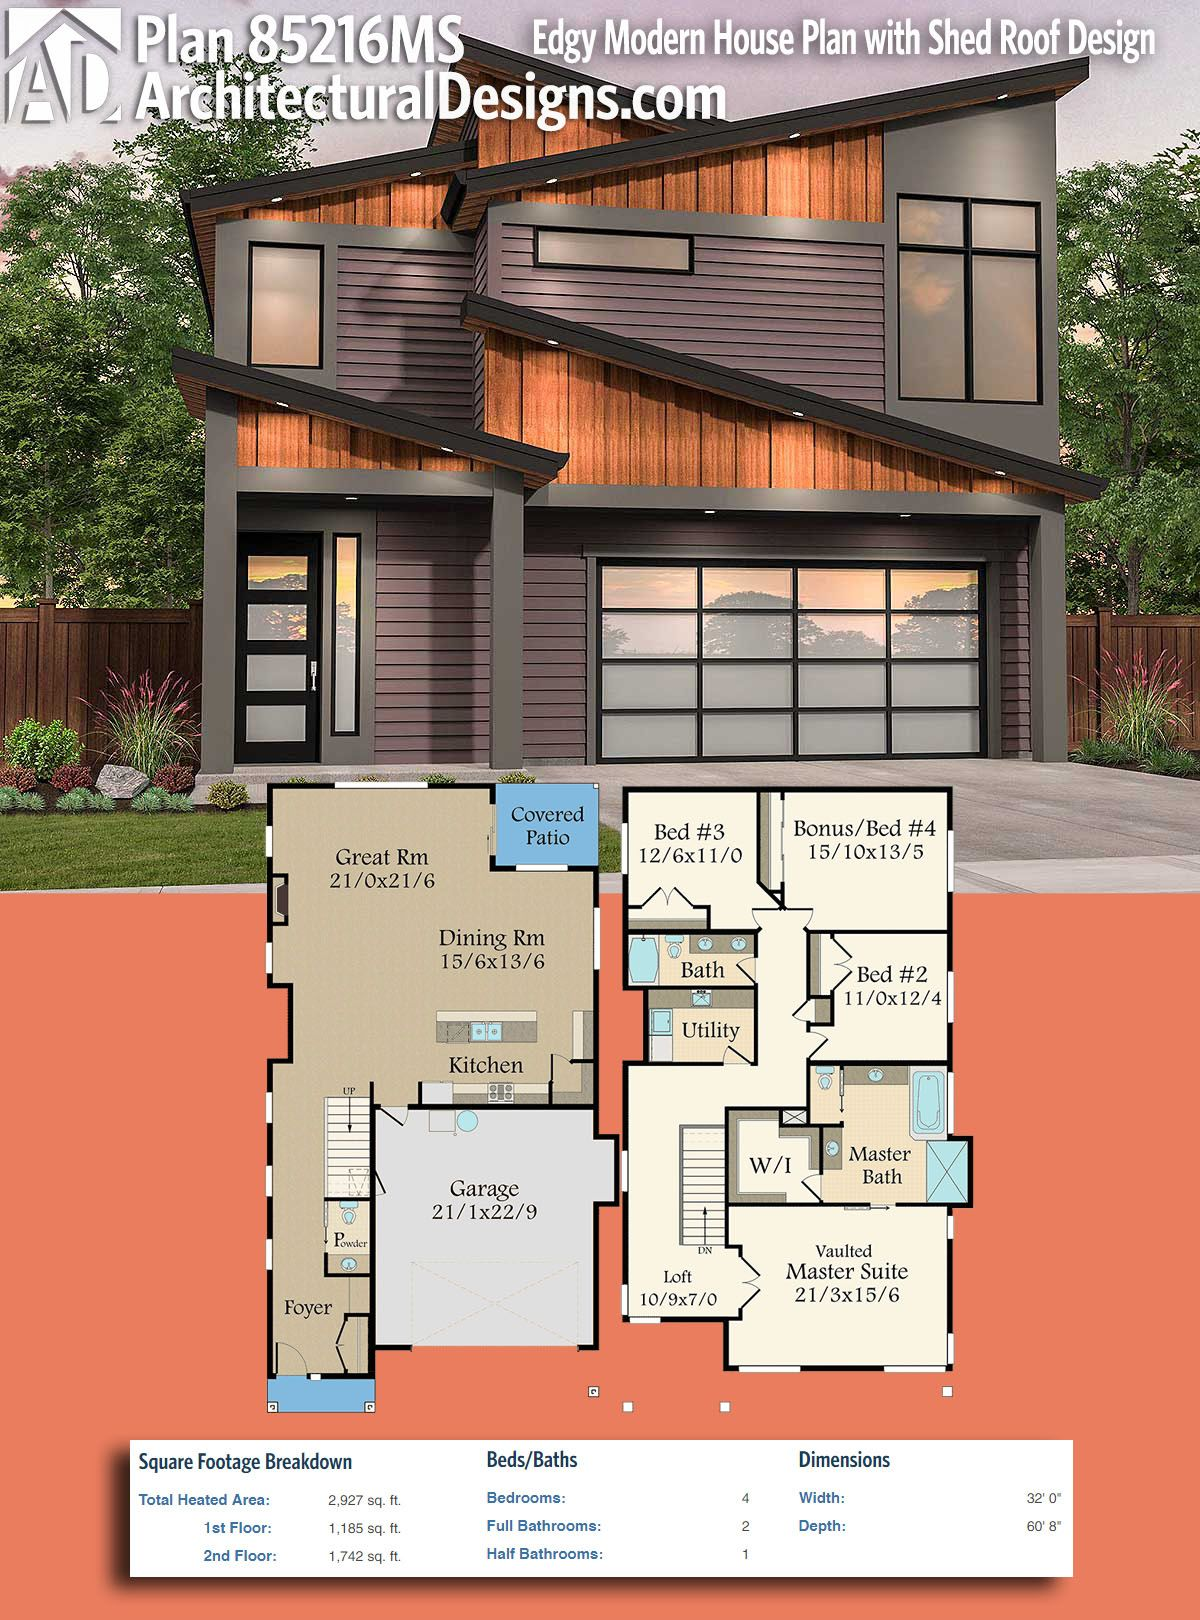 Architectural Designs Modern House Plan 85216Ms Gives You 4 Beds